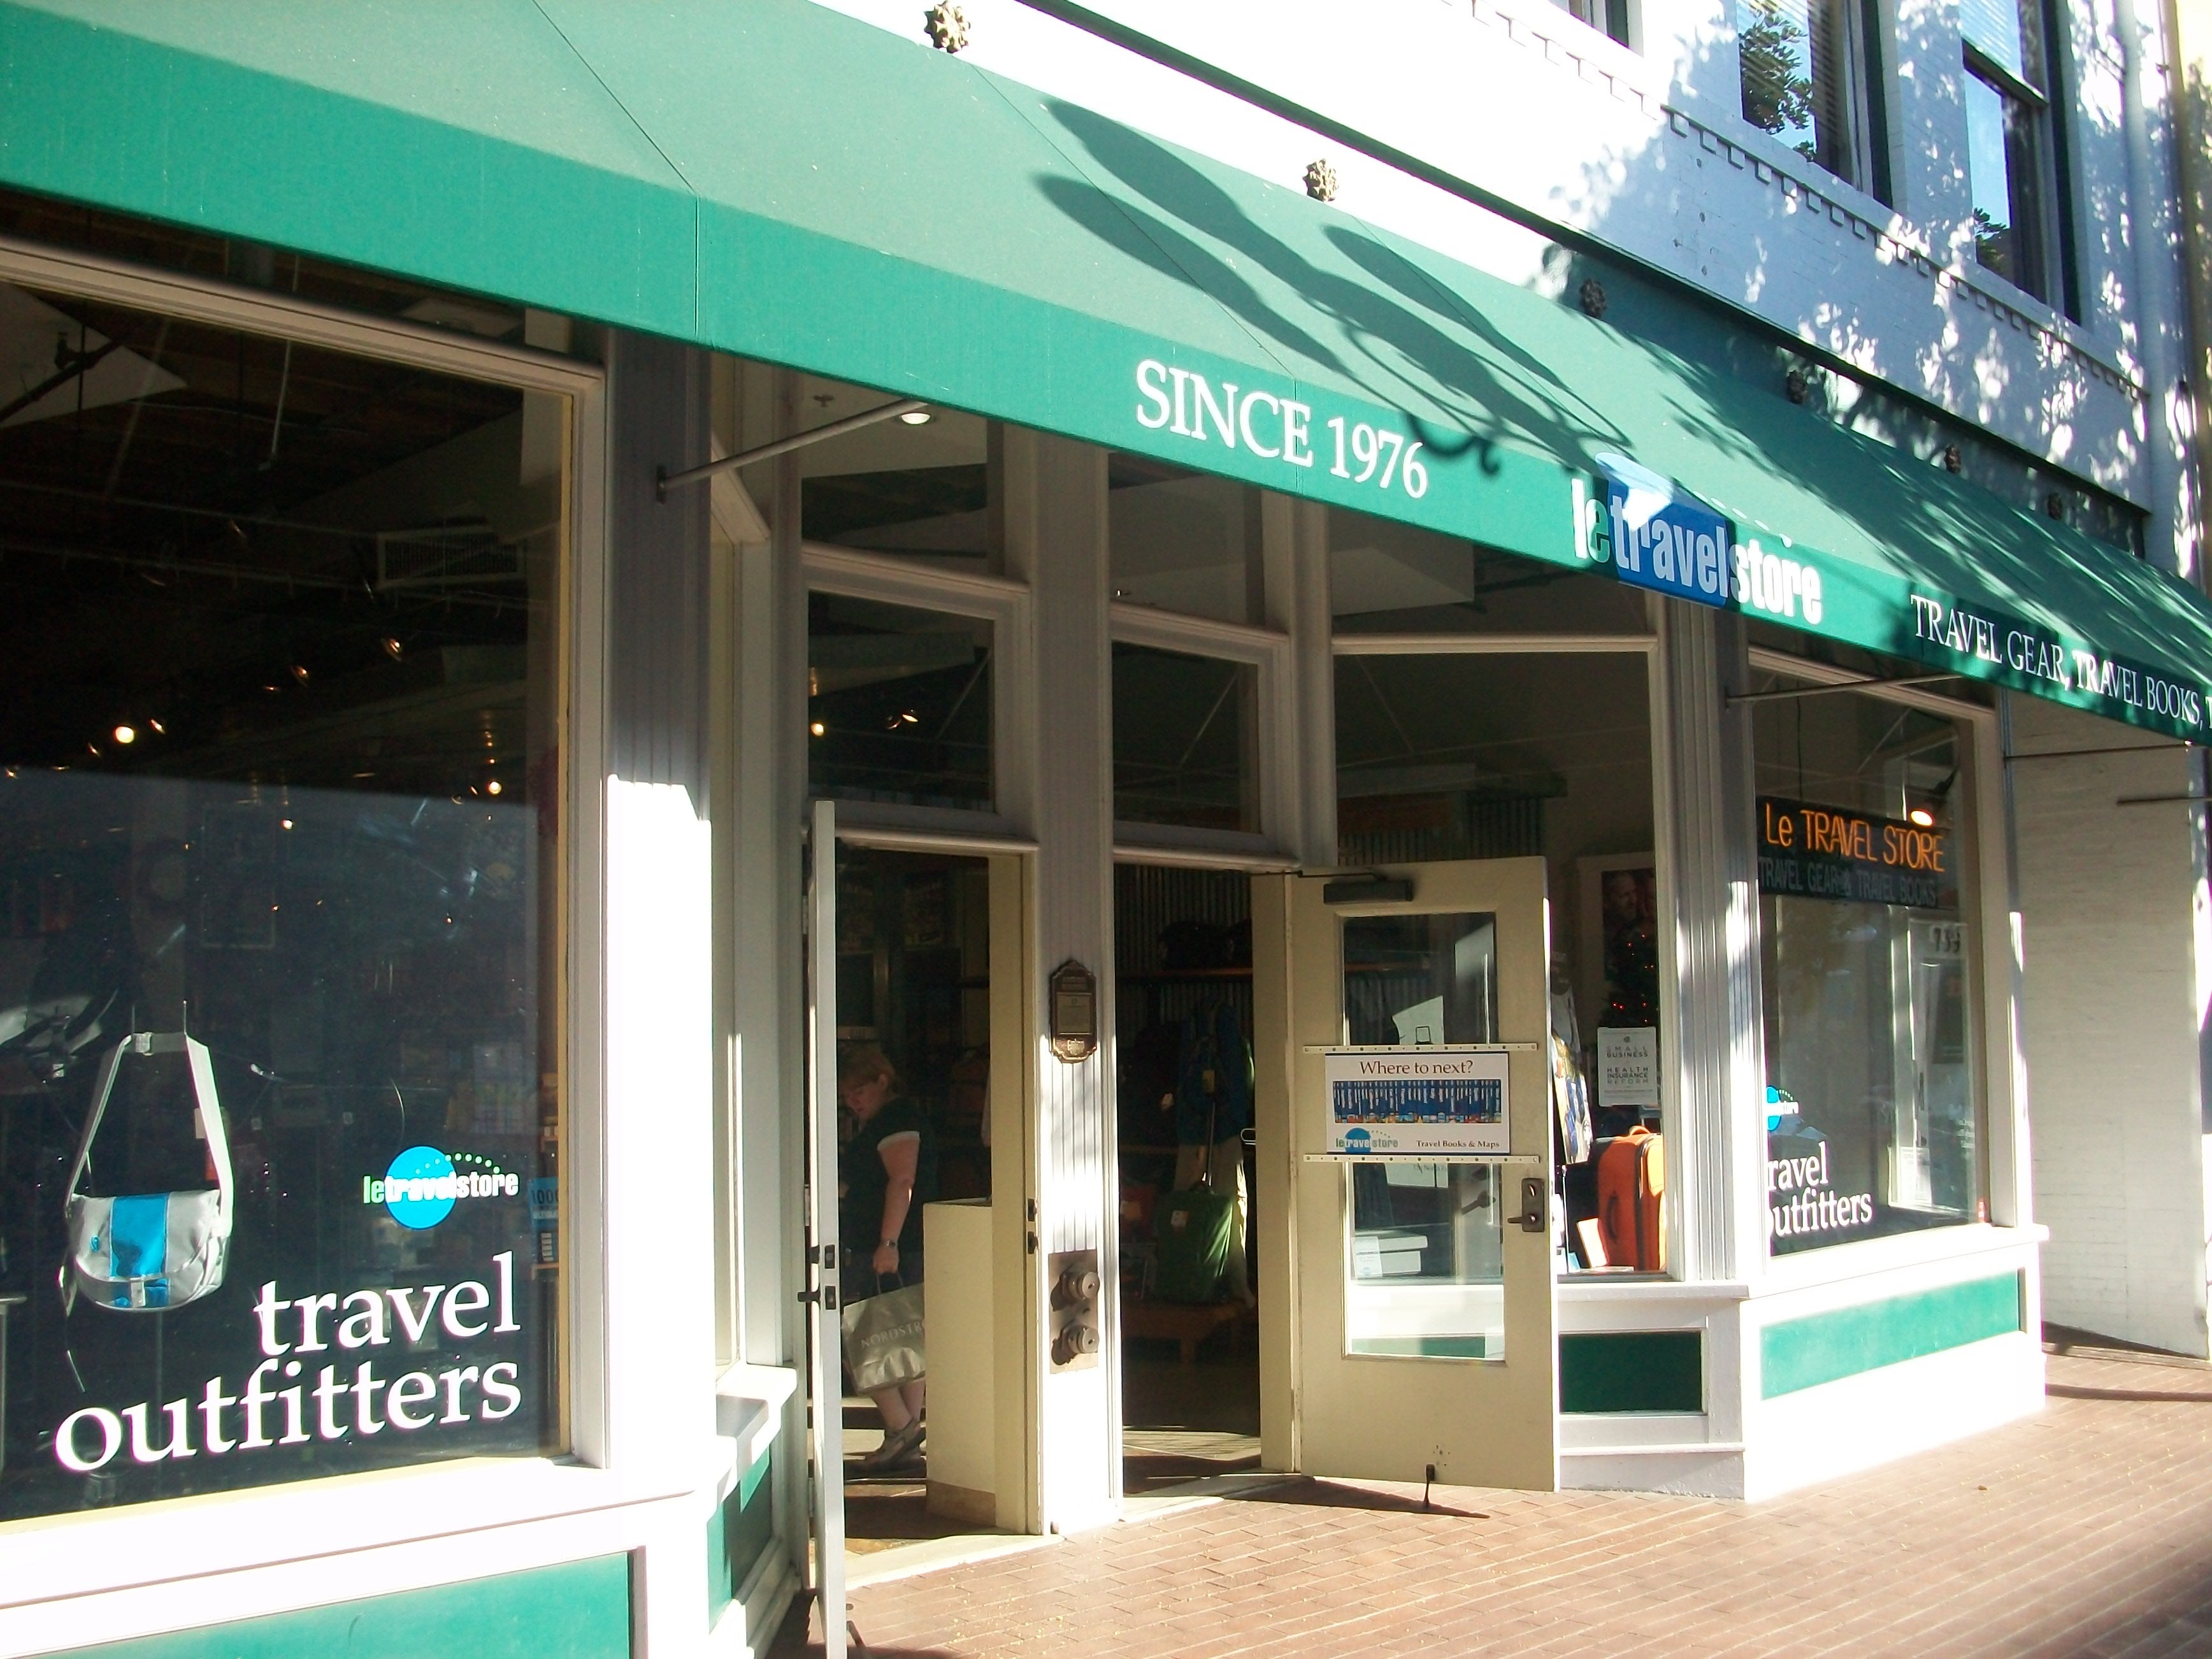 Le travel store